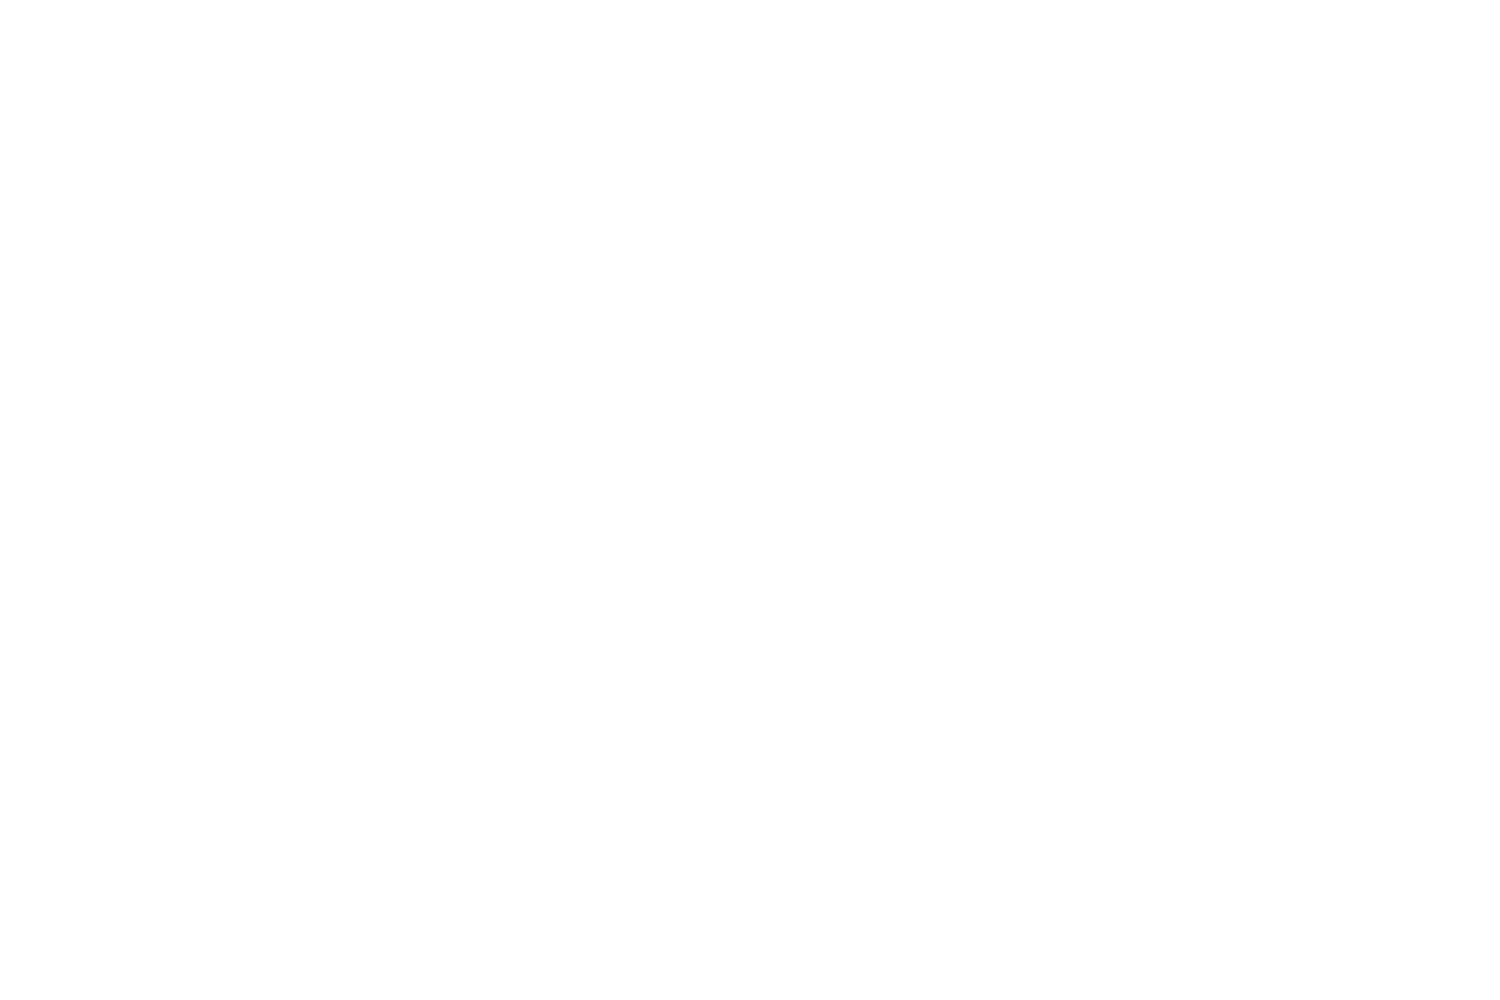 WHITE HOUSE WRITERS GROUP